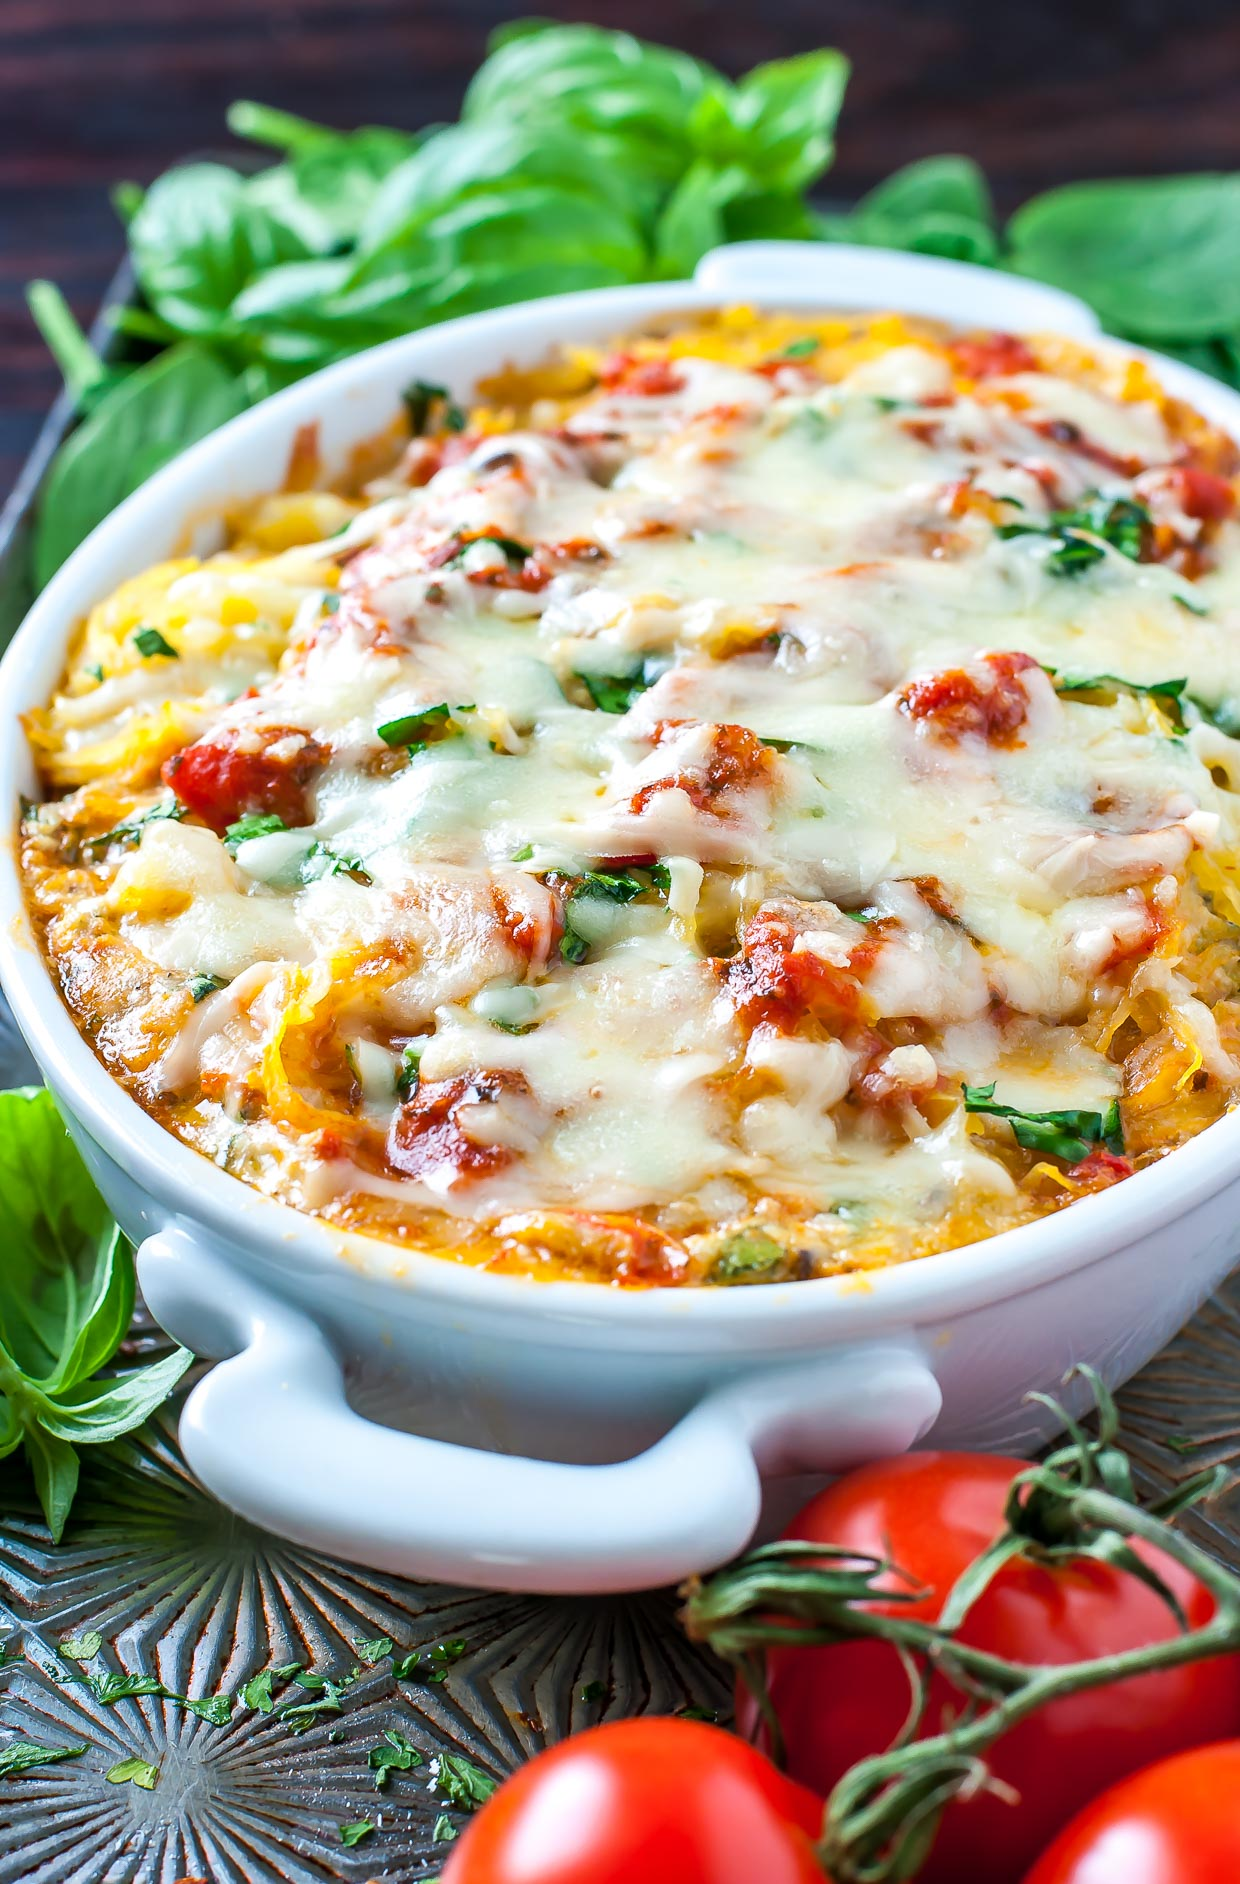 This Cheesy Vegetarian Spaghetti Squash Casserole channels all the flavor of our favorite Italian lasagna recipe with a healthy low-carb twist! GF